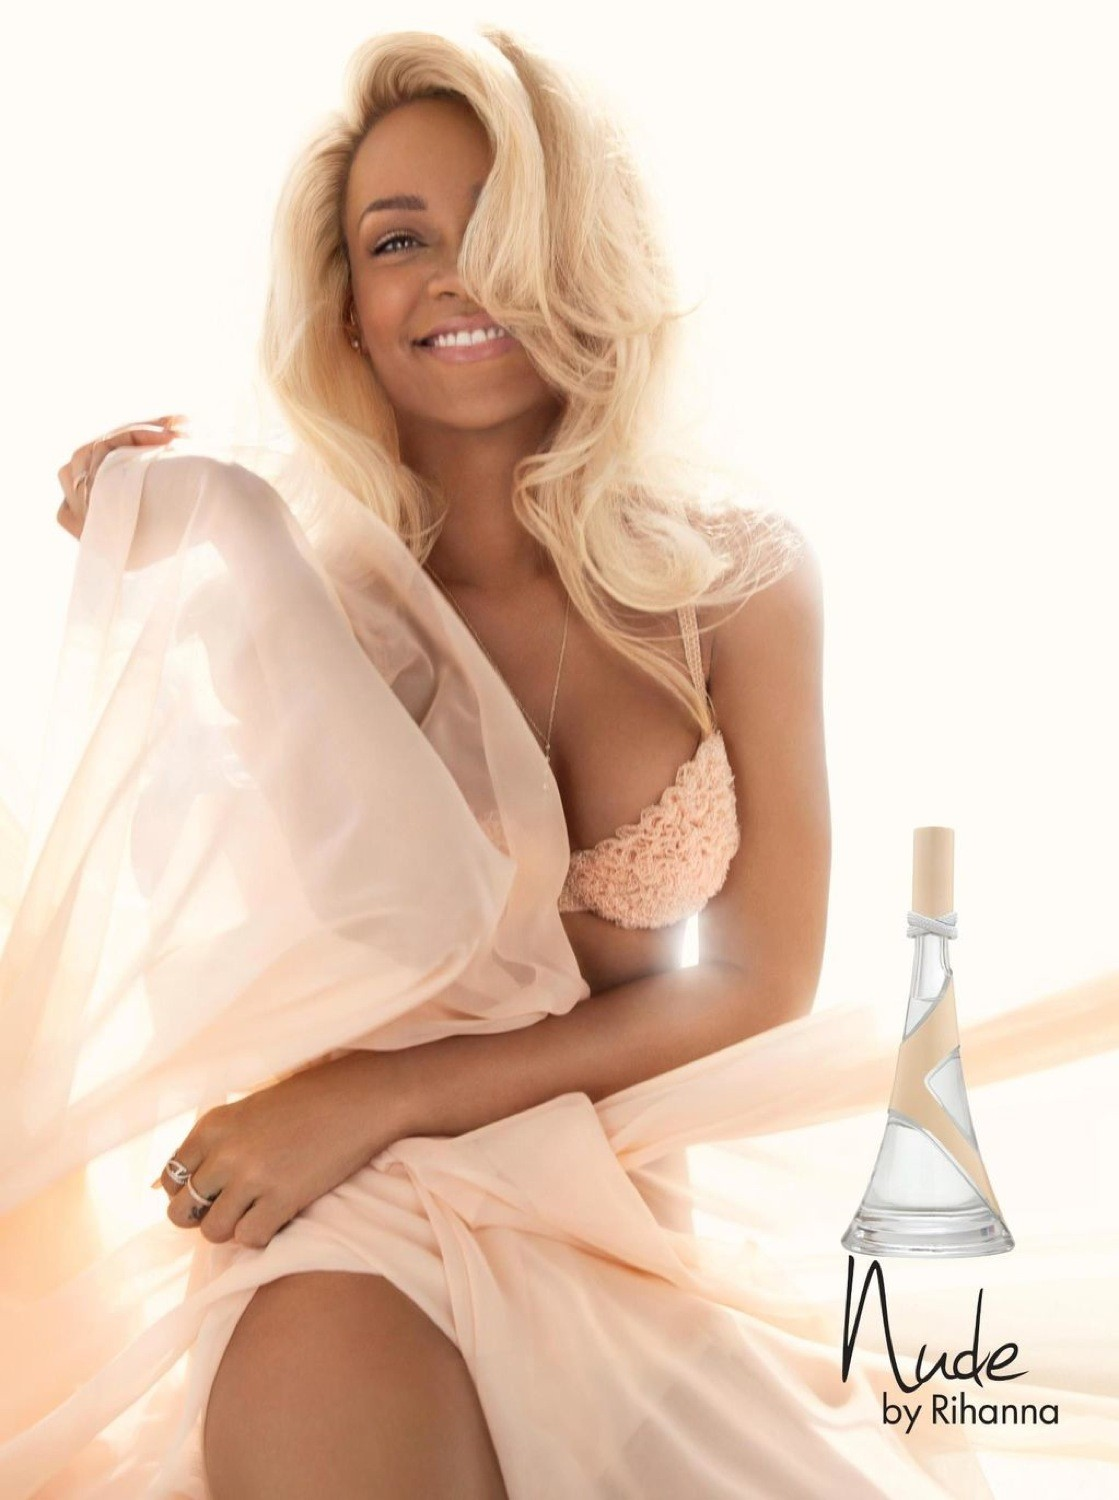 Rihanna Nude By Fragrance Ad